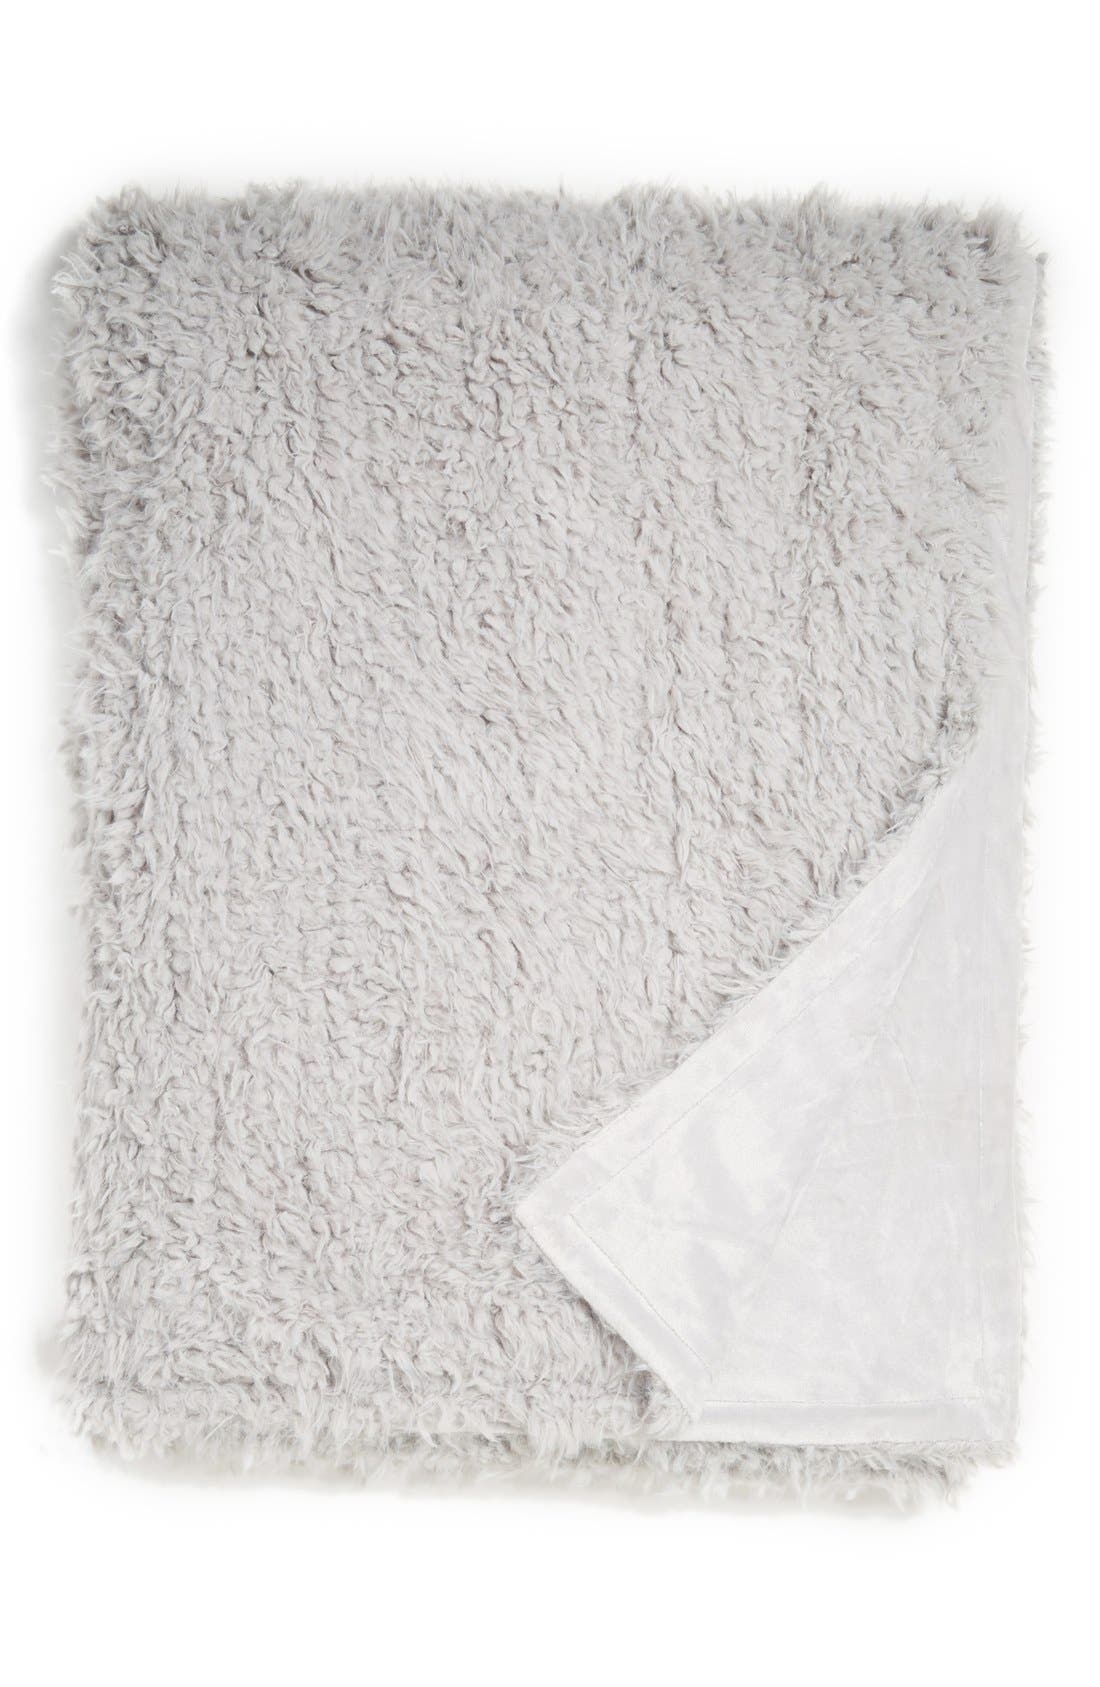 Alternate Image 1 Selected - Nordstrom at Home 'Shaggy Plush' Faux Fur Blanket